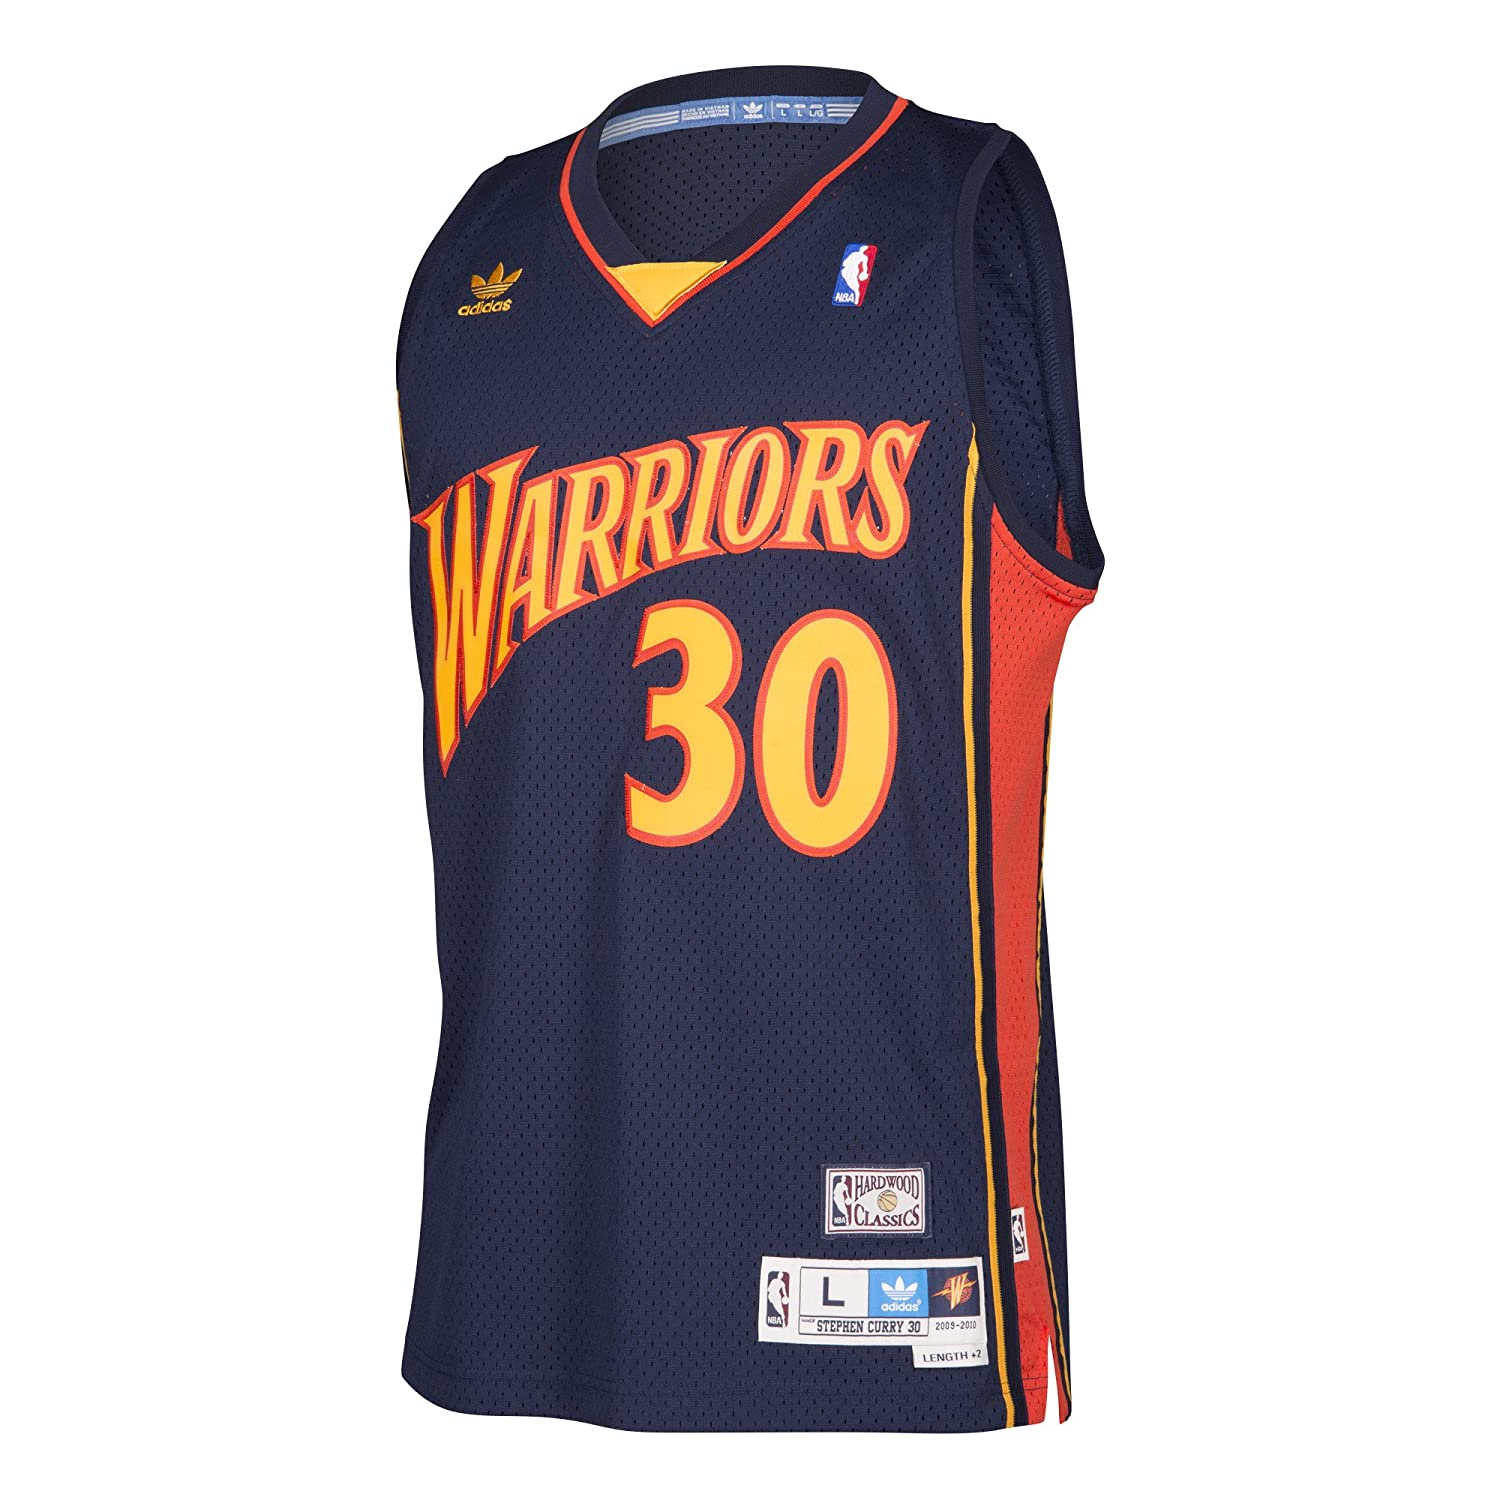 a6fe1bc2016a Amazon.com   Stephen Curry  30 Golden State Warriors Adidas NBA Navy  Throwback Adult Jersey (Medium)   Sports   Outdoors